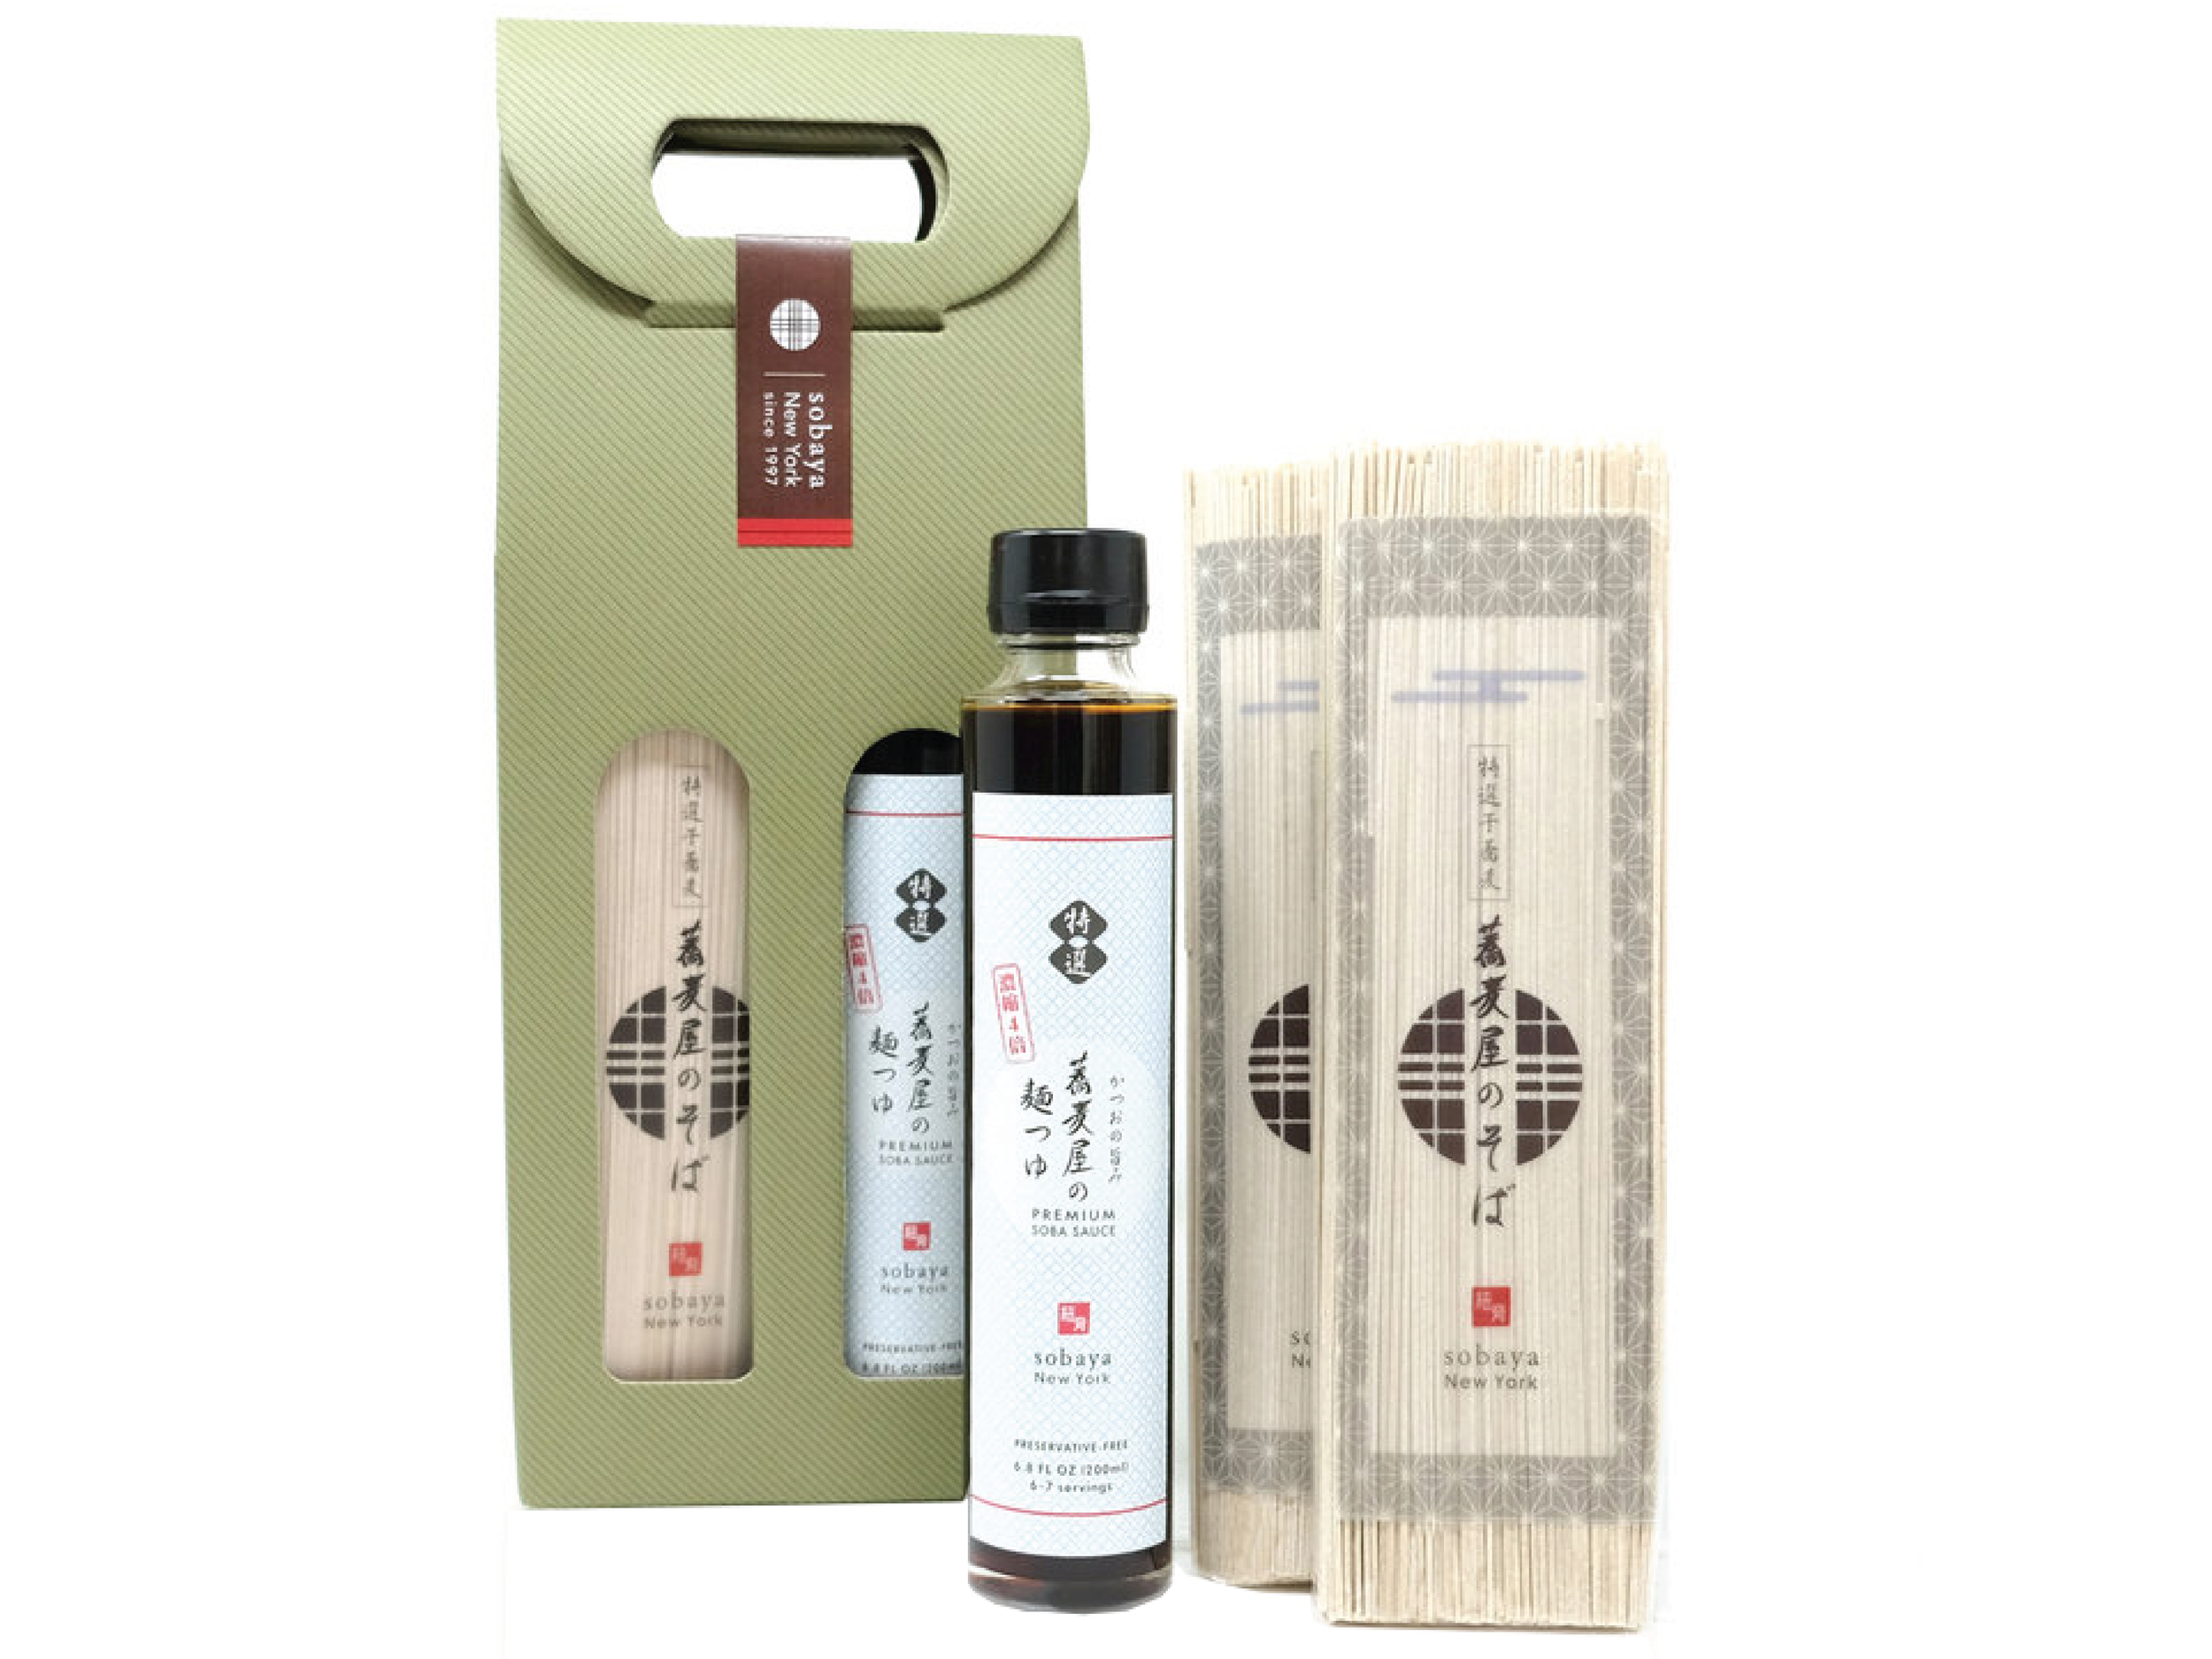 Sobaya - Artisanal Soba Now Available for You to Take Home